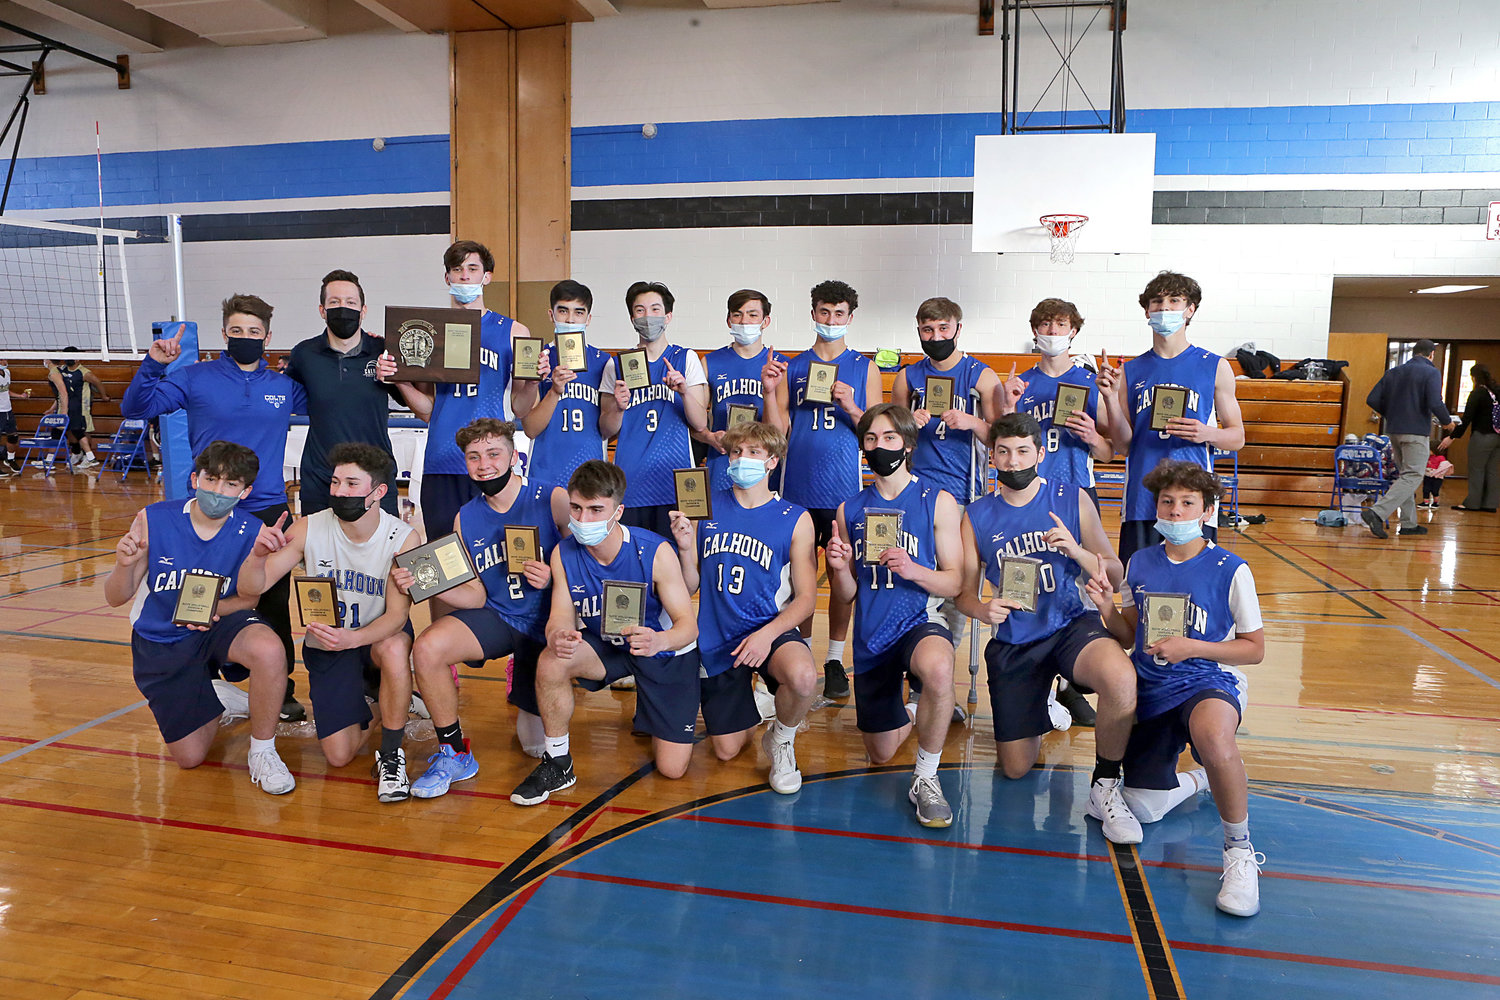 Calhoun captured its first-ever Nassau County boys' volleyball championship with a three-set sweep of Bethpage at Brookside School.